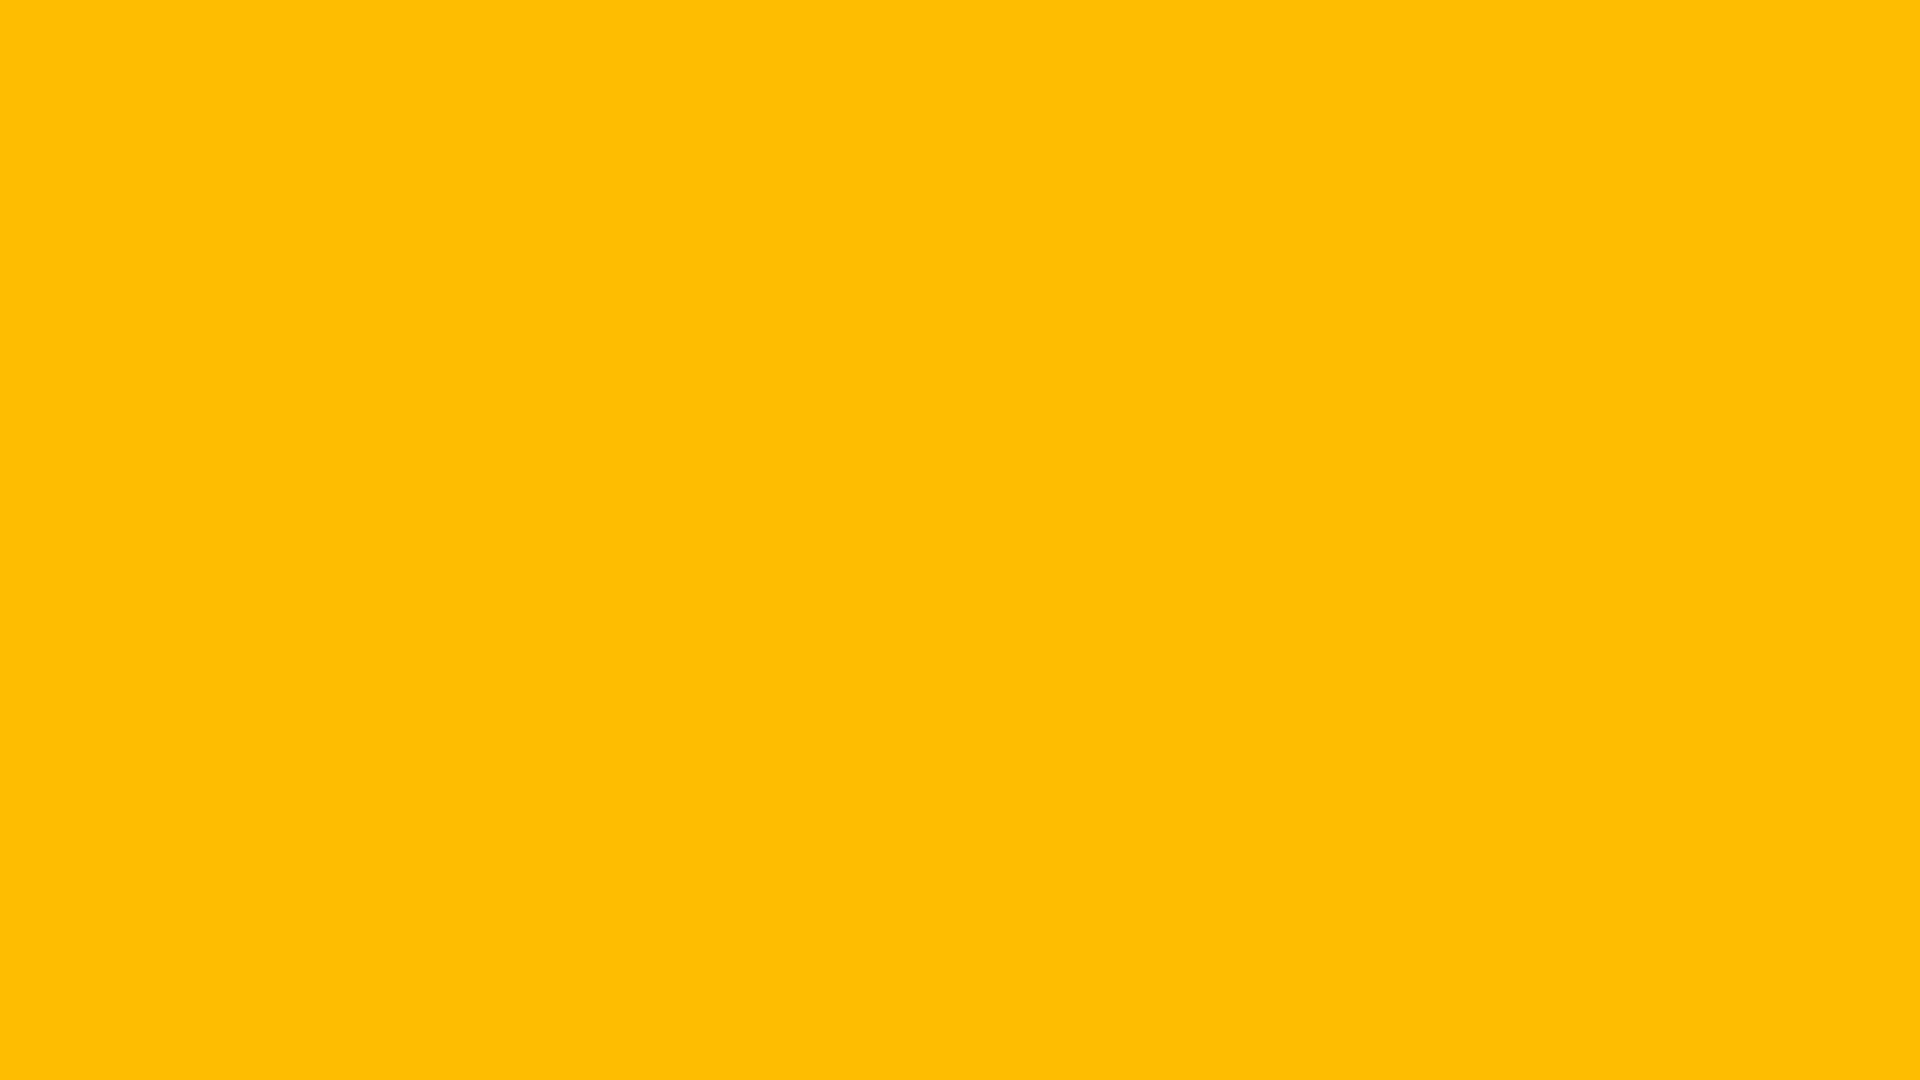 1920x1080 Amber Solid Color Background